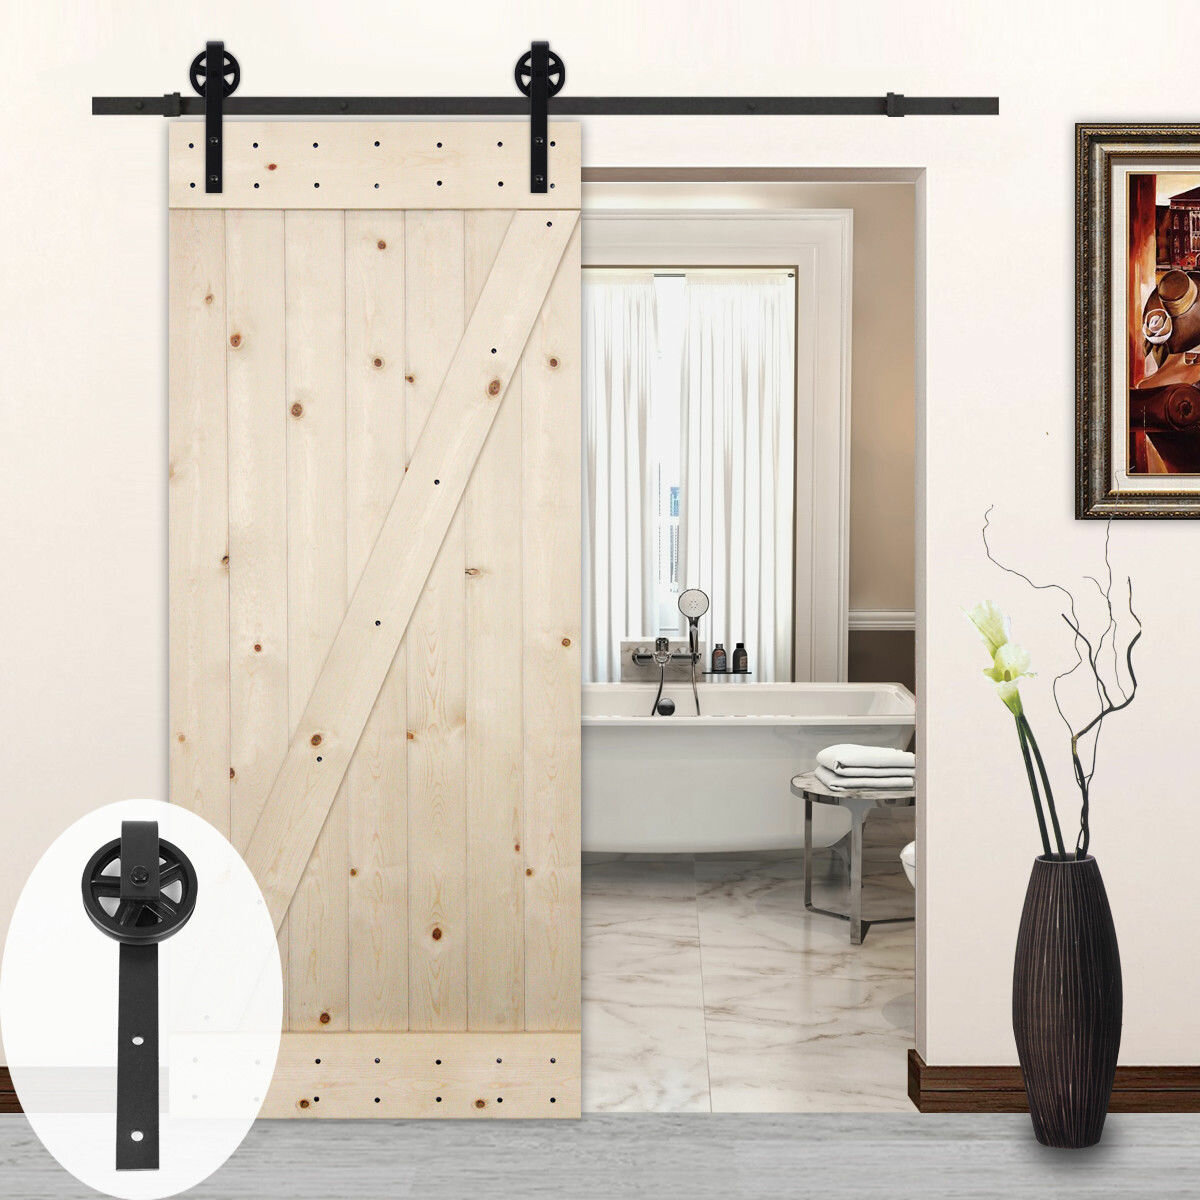 Lubann Big Wheel Style Sliding Wood Track Kit Barn Door ...